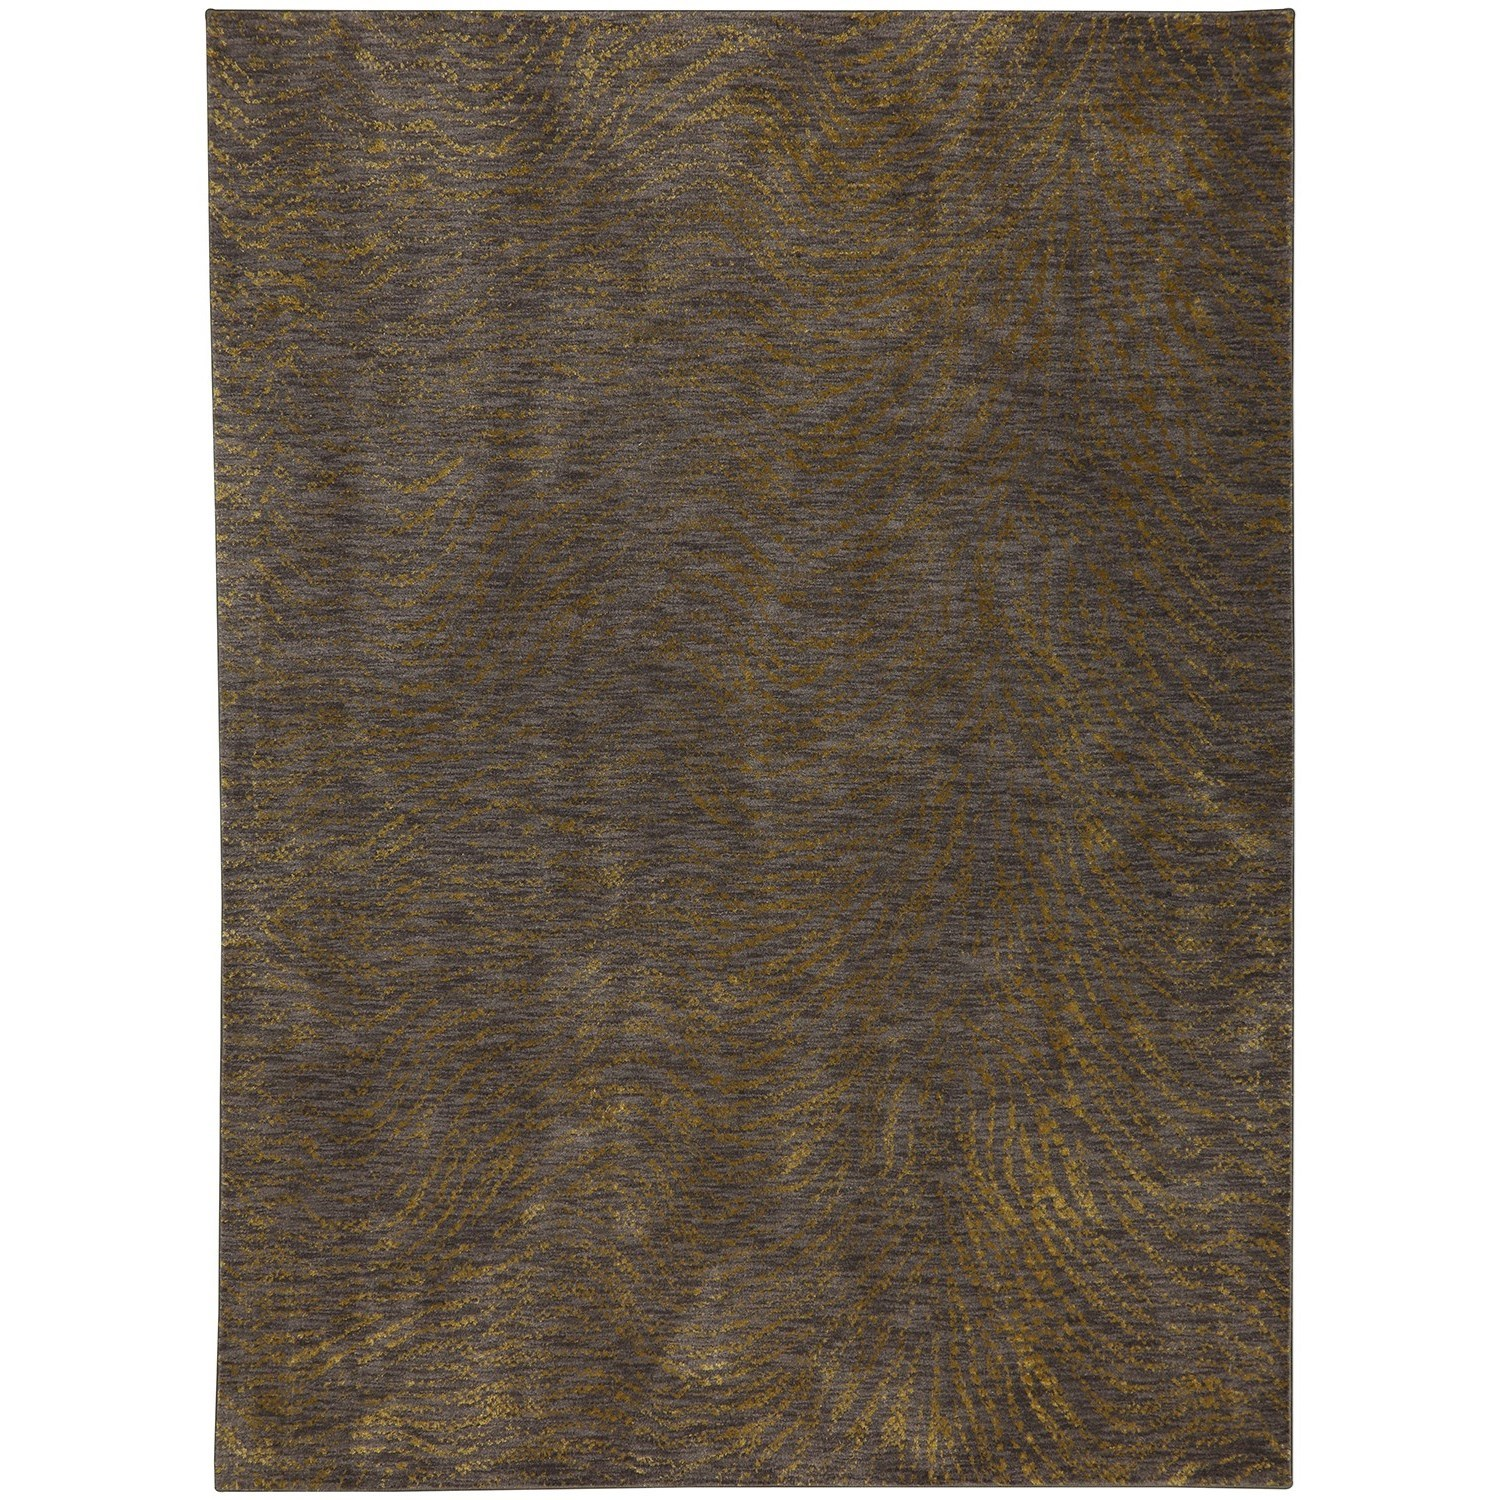 "5' 3""x7' 10"" Rectangle Animal Print Area Rug"